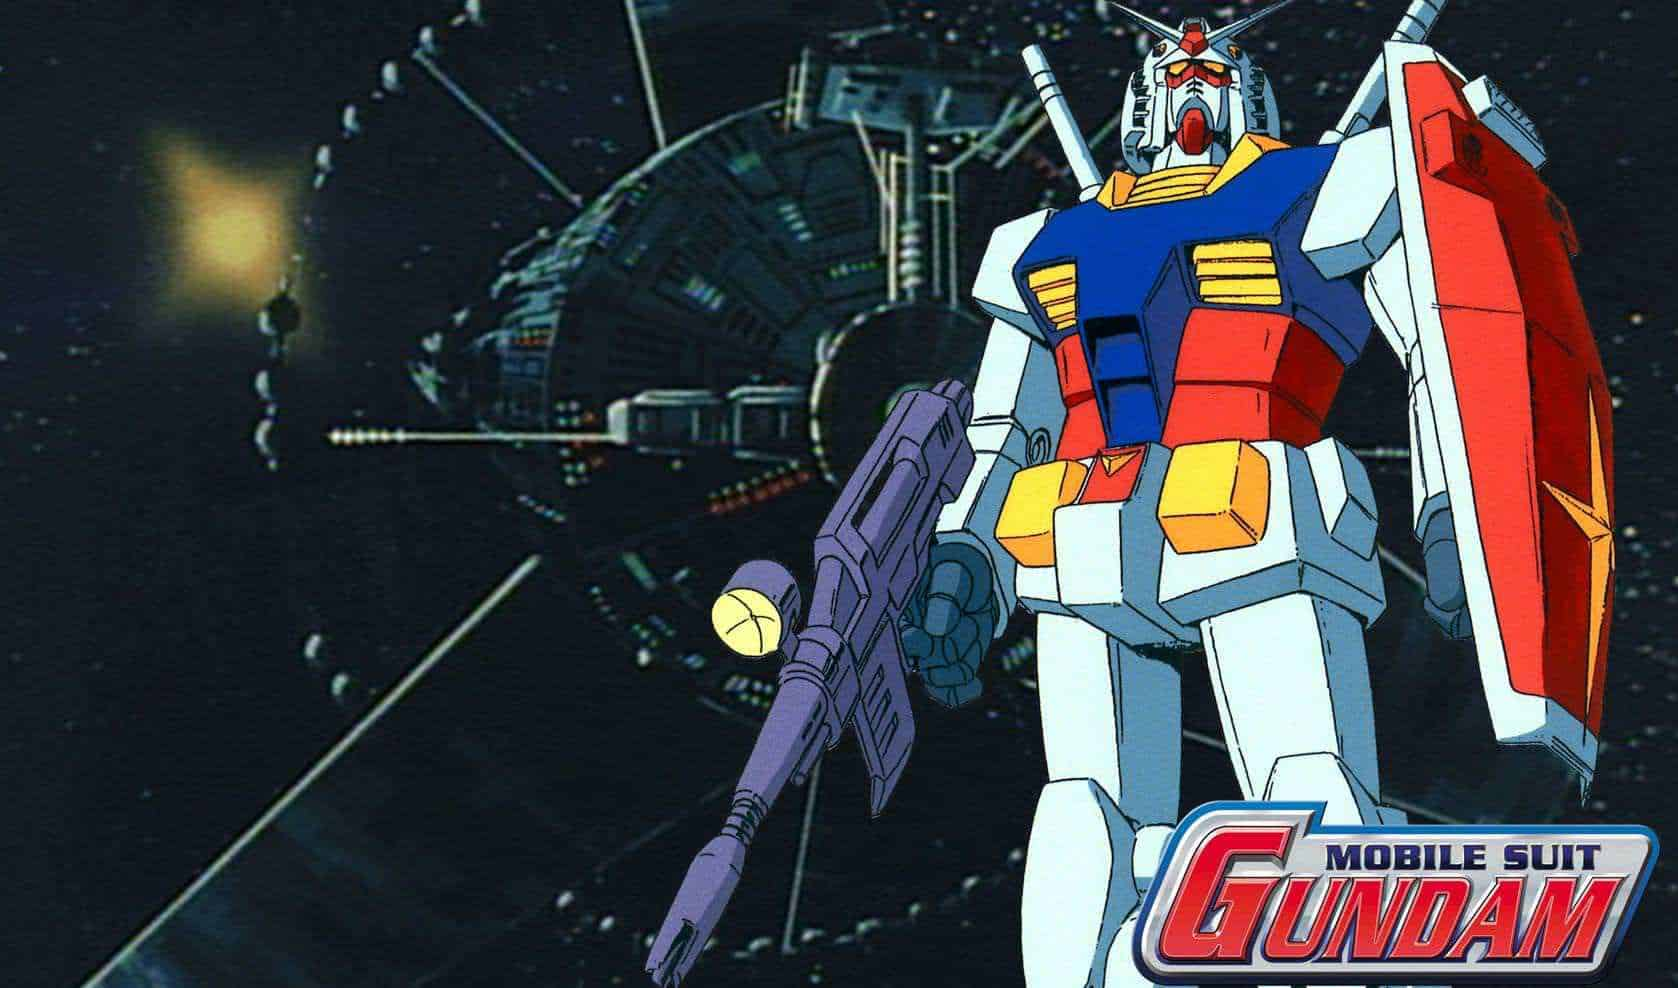 The Original Mobile Suit Gundam with a Colony in the background